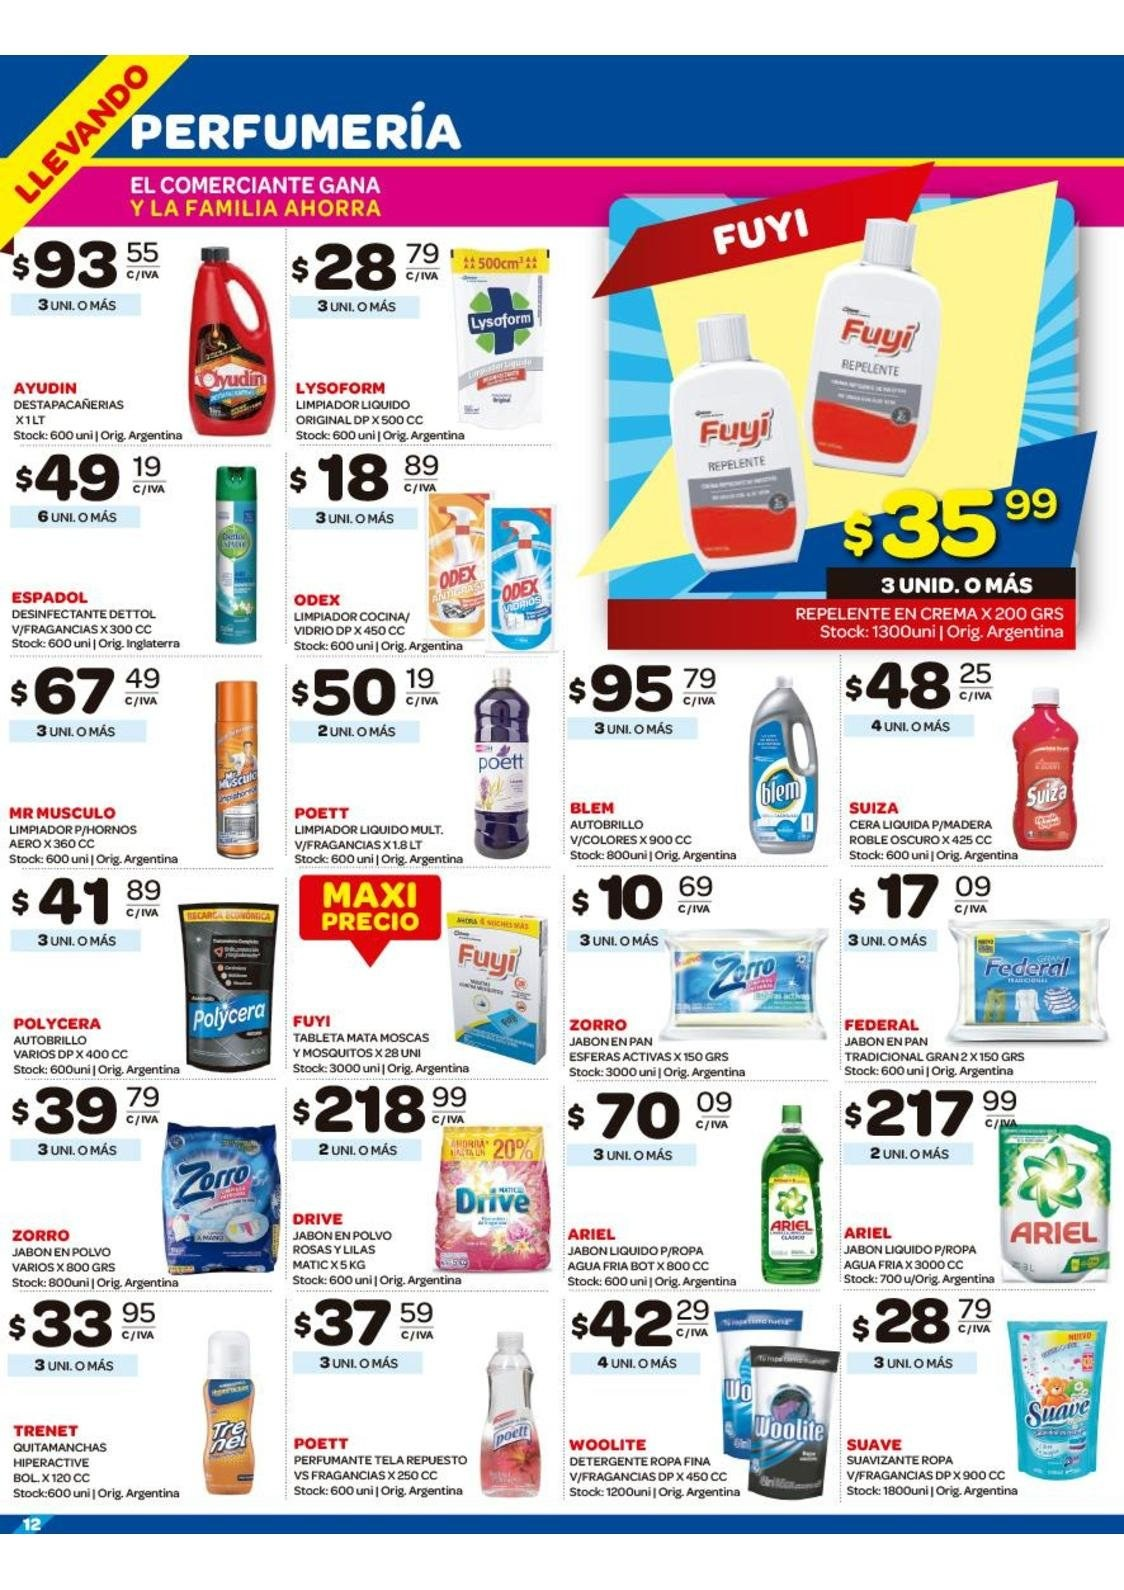 Folleto actual Carrefour - 31.12.2018 - 6.1.2019 - Ventas - detergente cc99d3ada37b